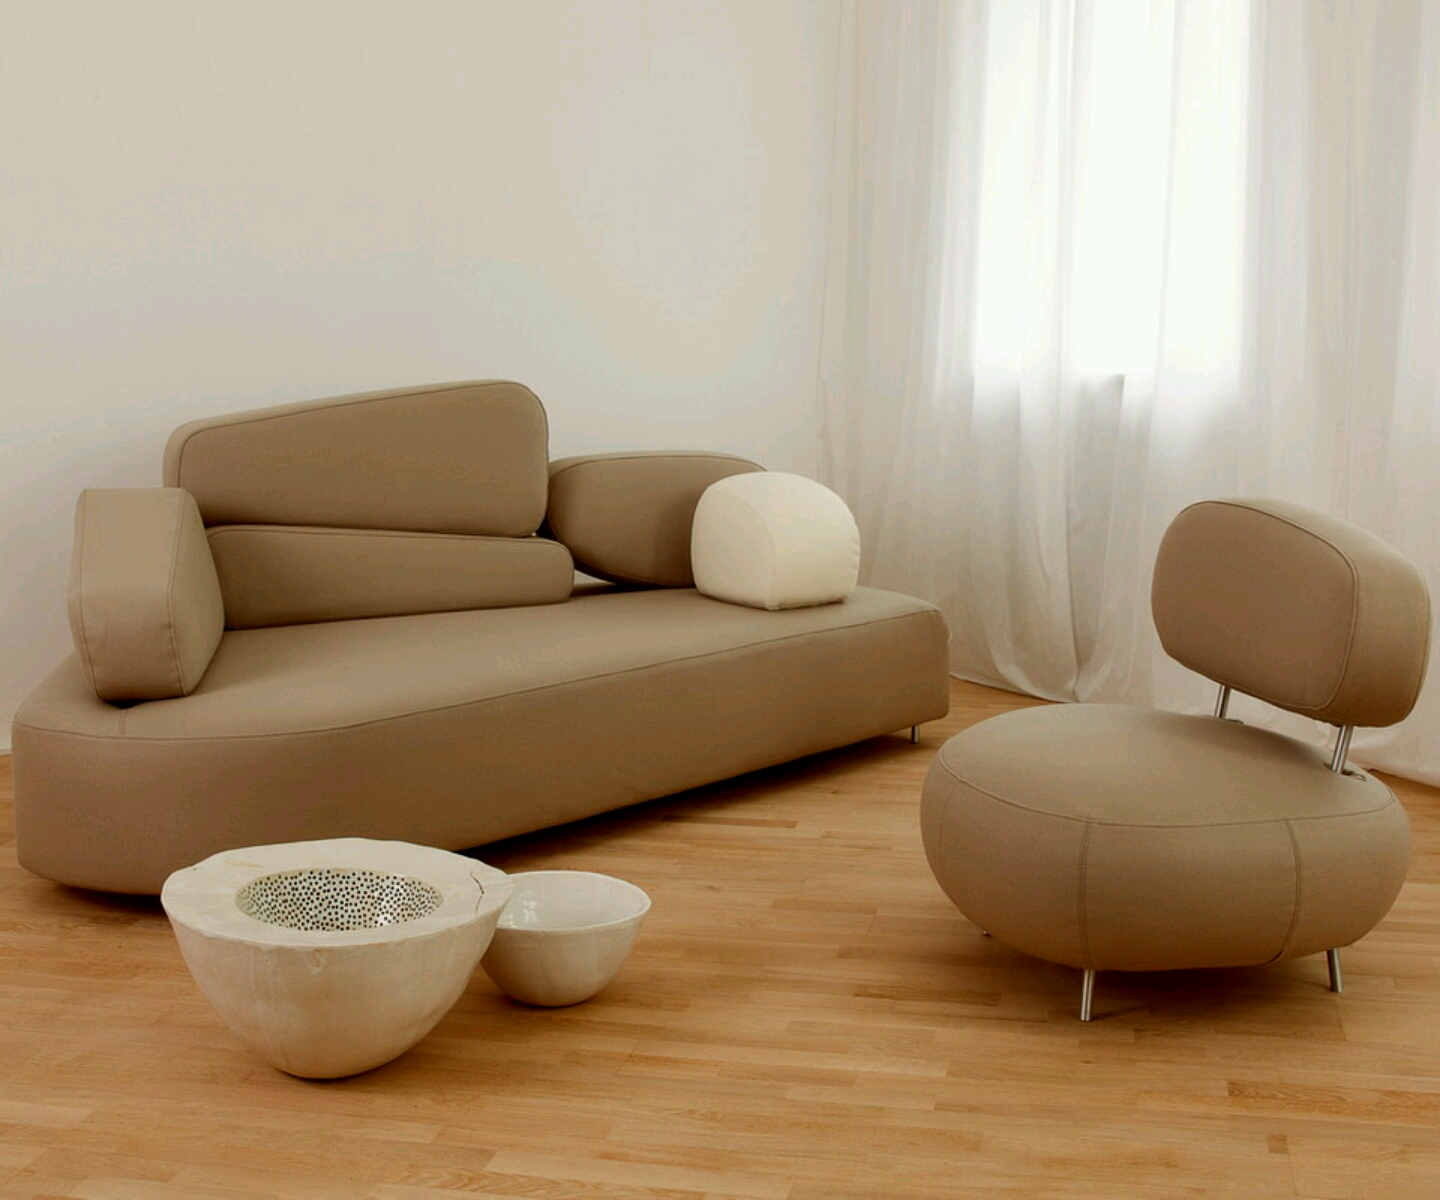 Designer Sofa Furniture Day Design House Stockholm Beautiful Modern Designs An Interior